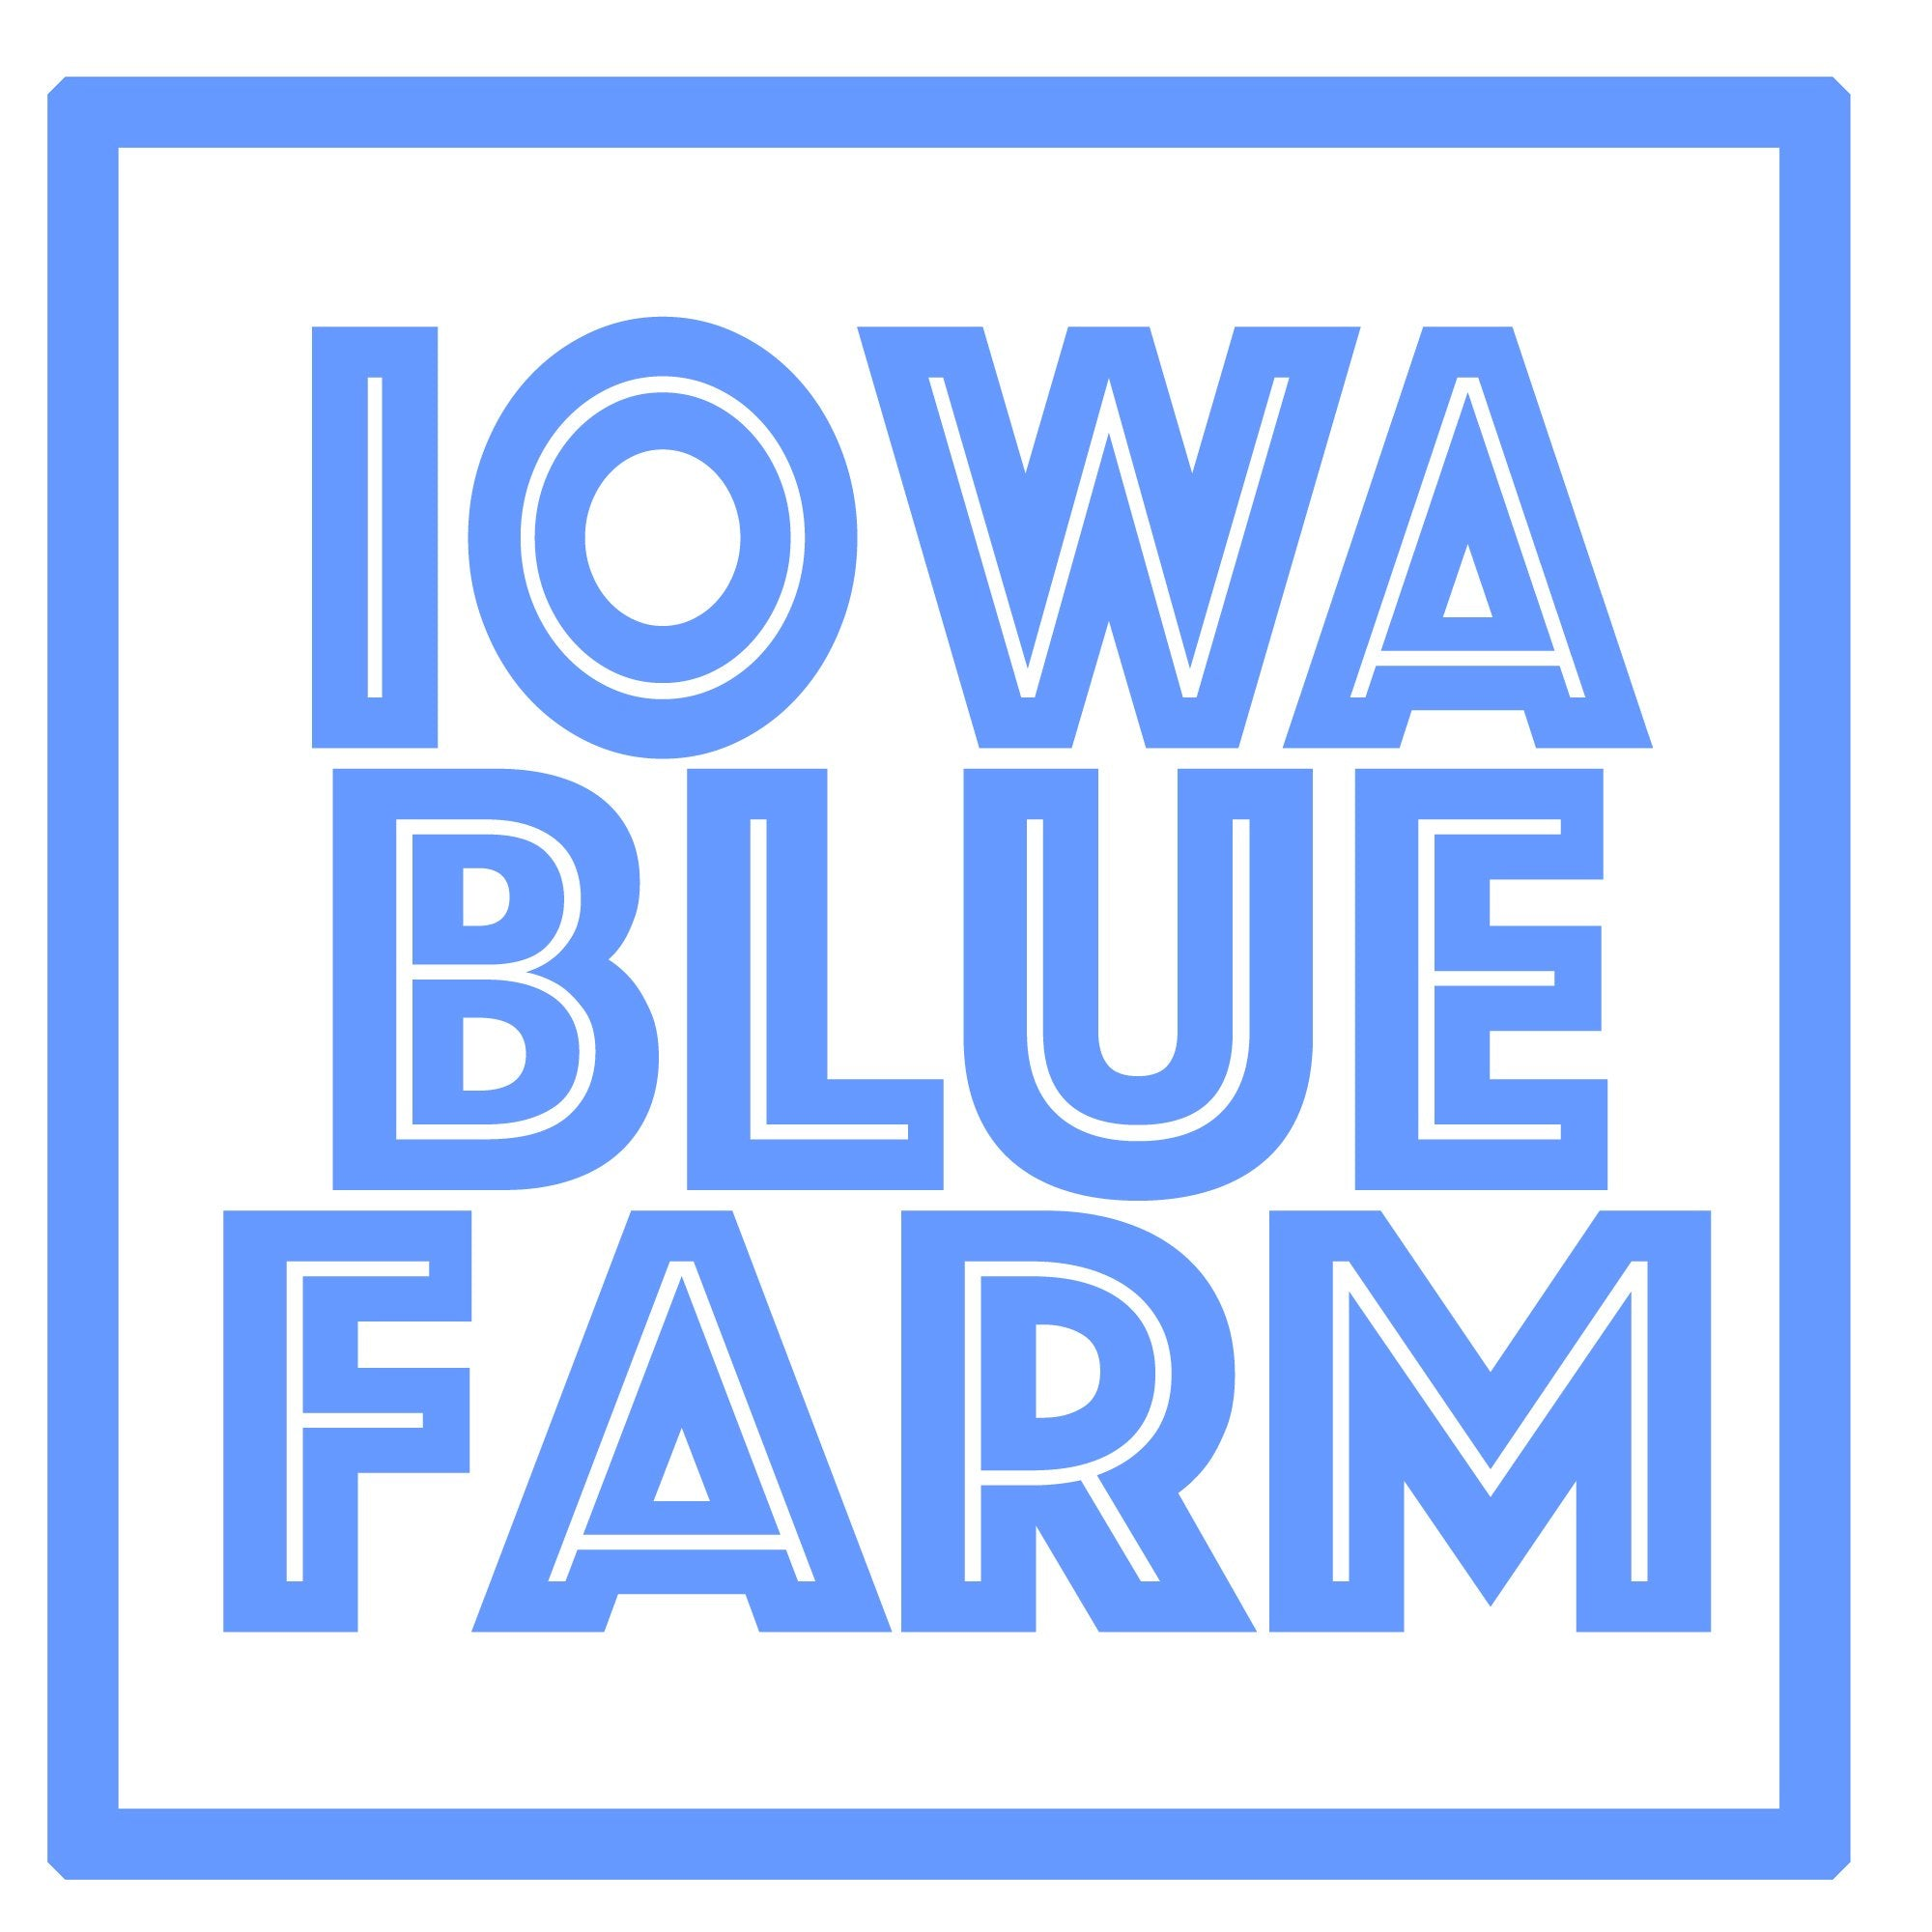 Iowa Blue Farm